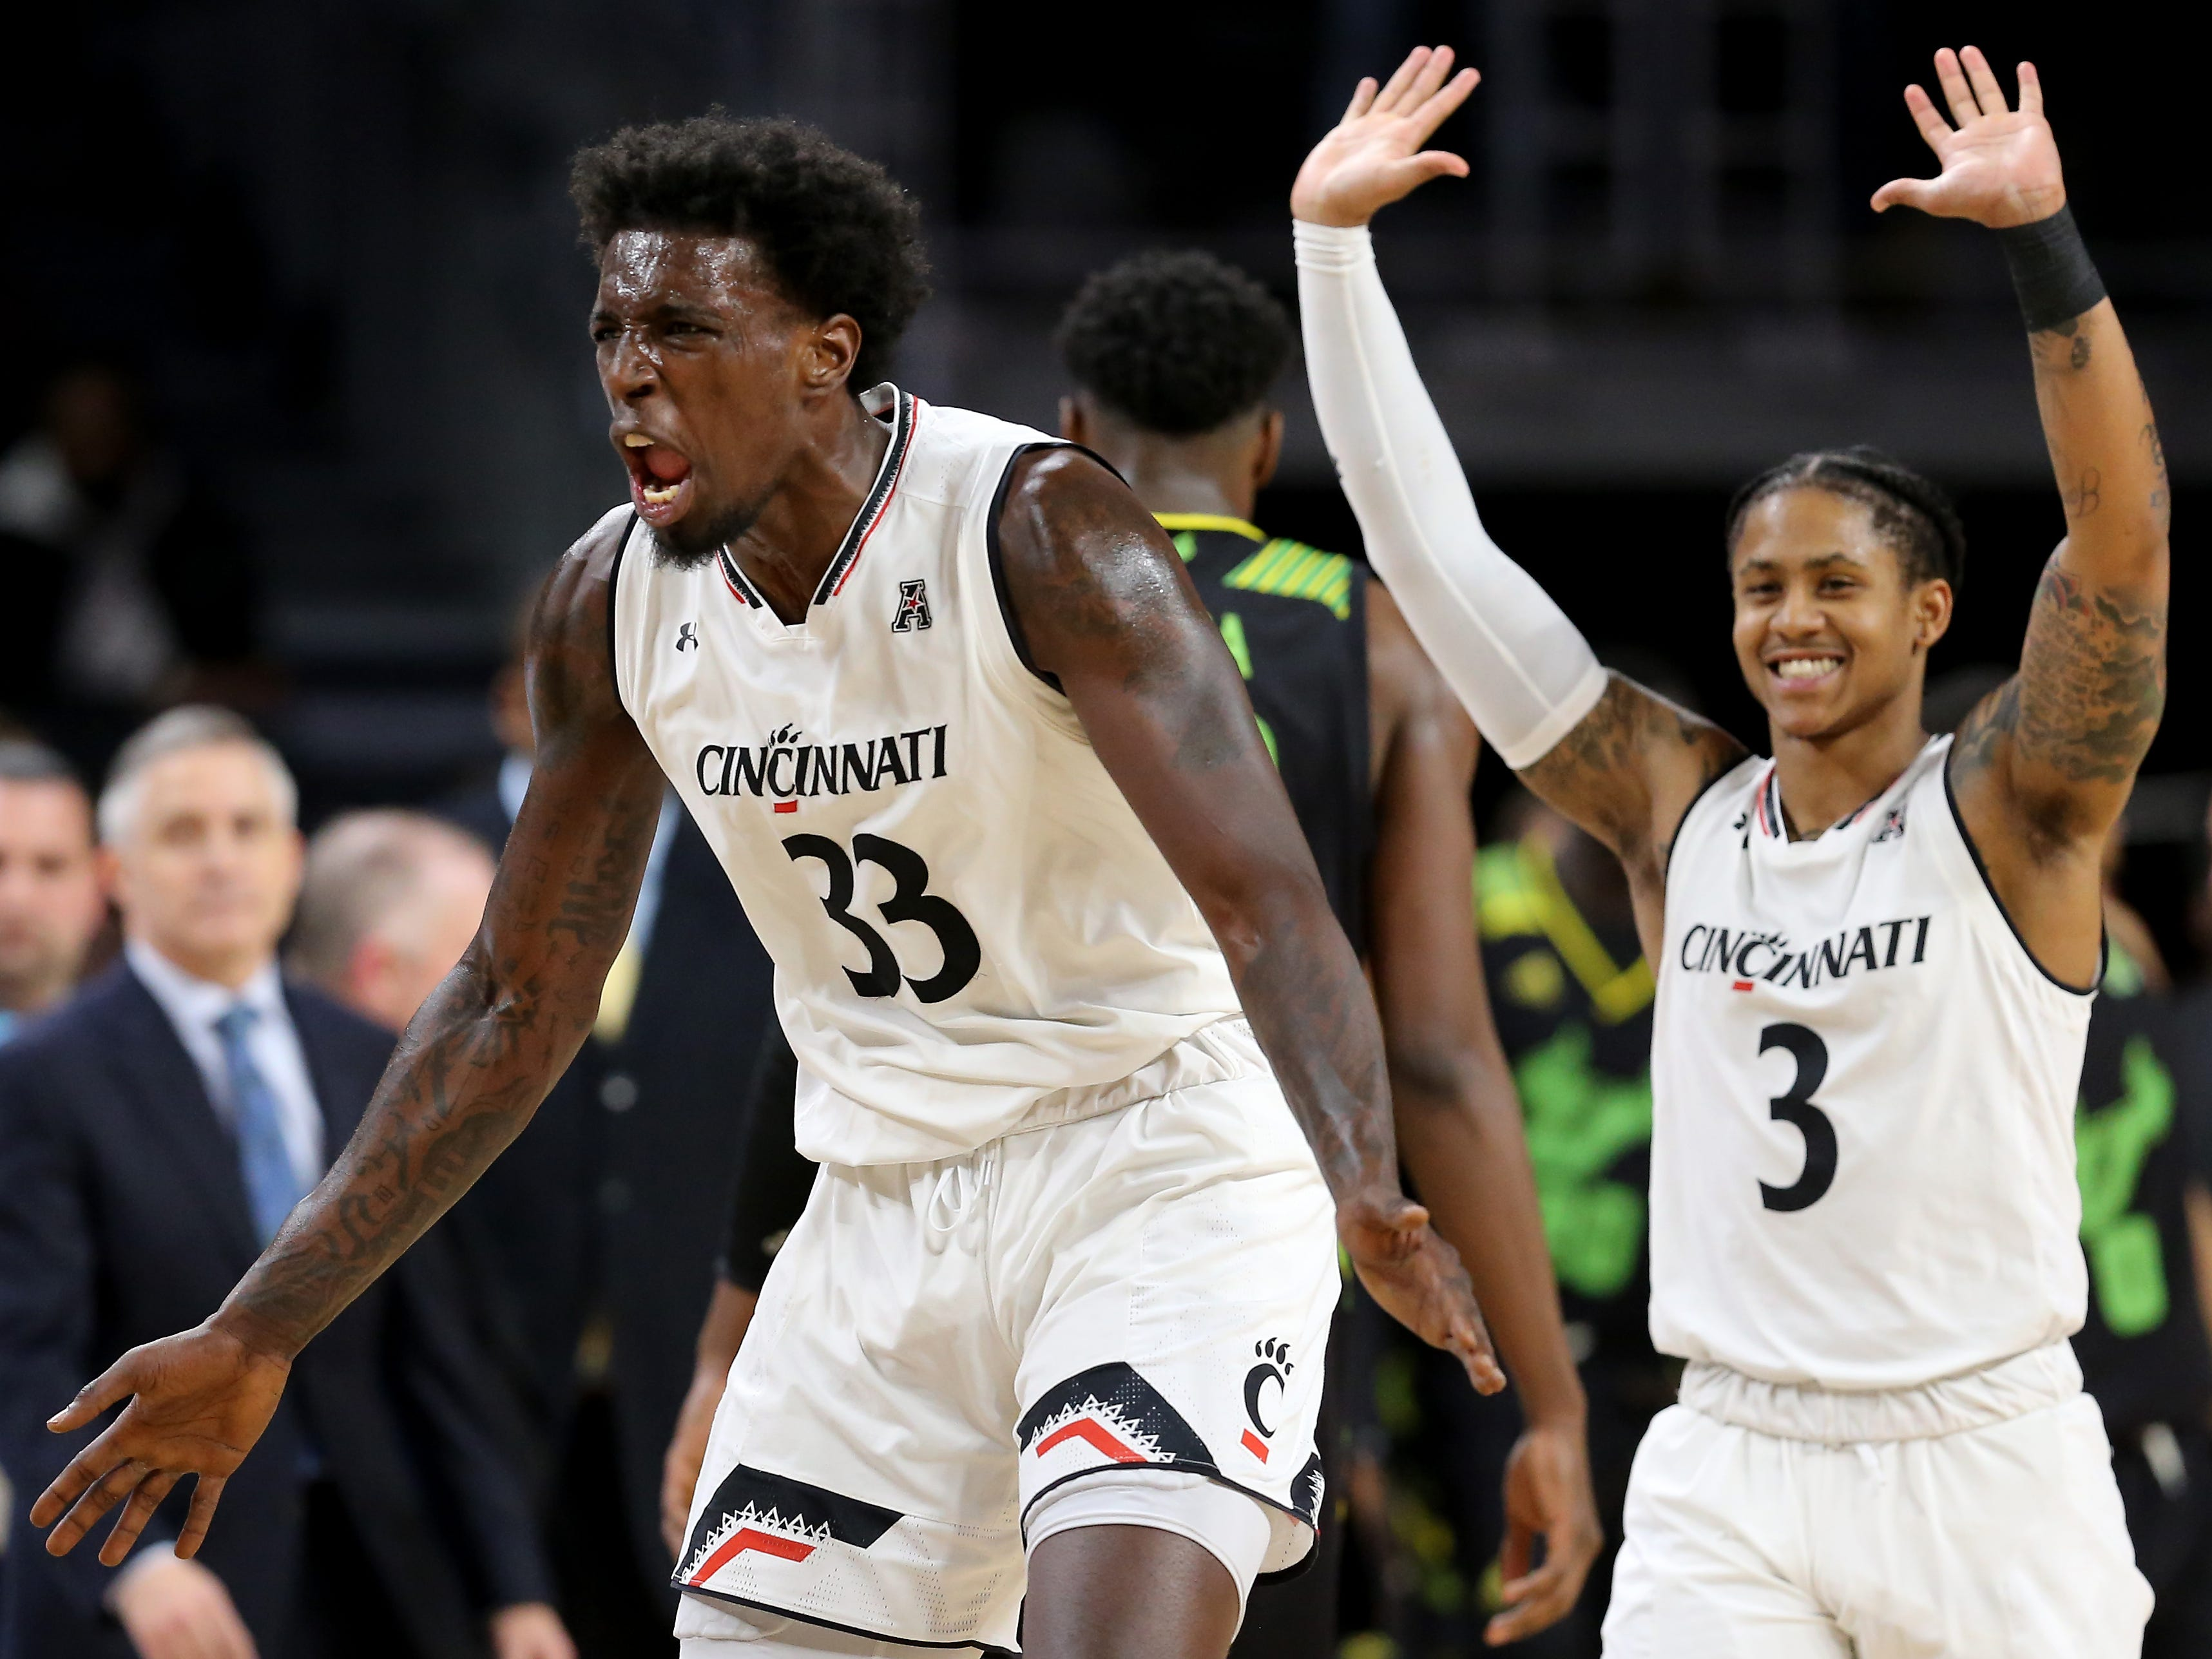 Cincinnati Bearcats center Nysier Brooks (33) and Cincinnati Bearcats guard Justin Jenifer (3) celebrate a lead after a timeout is called in the second half of an NCAA college basketball game against the South Florida Bulls, Tuesday, Jan. 15, 2019, at Fifth Third Arena in Cincinnati. Cincinnati won 82-74.